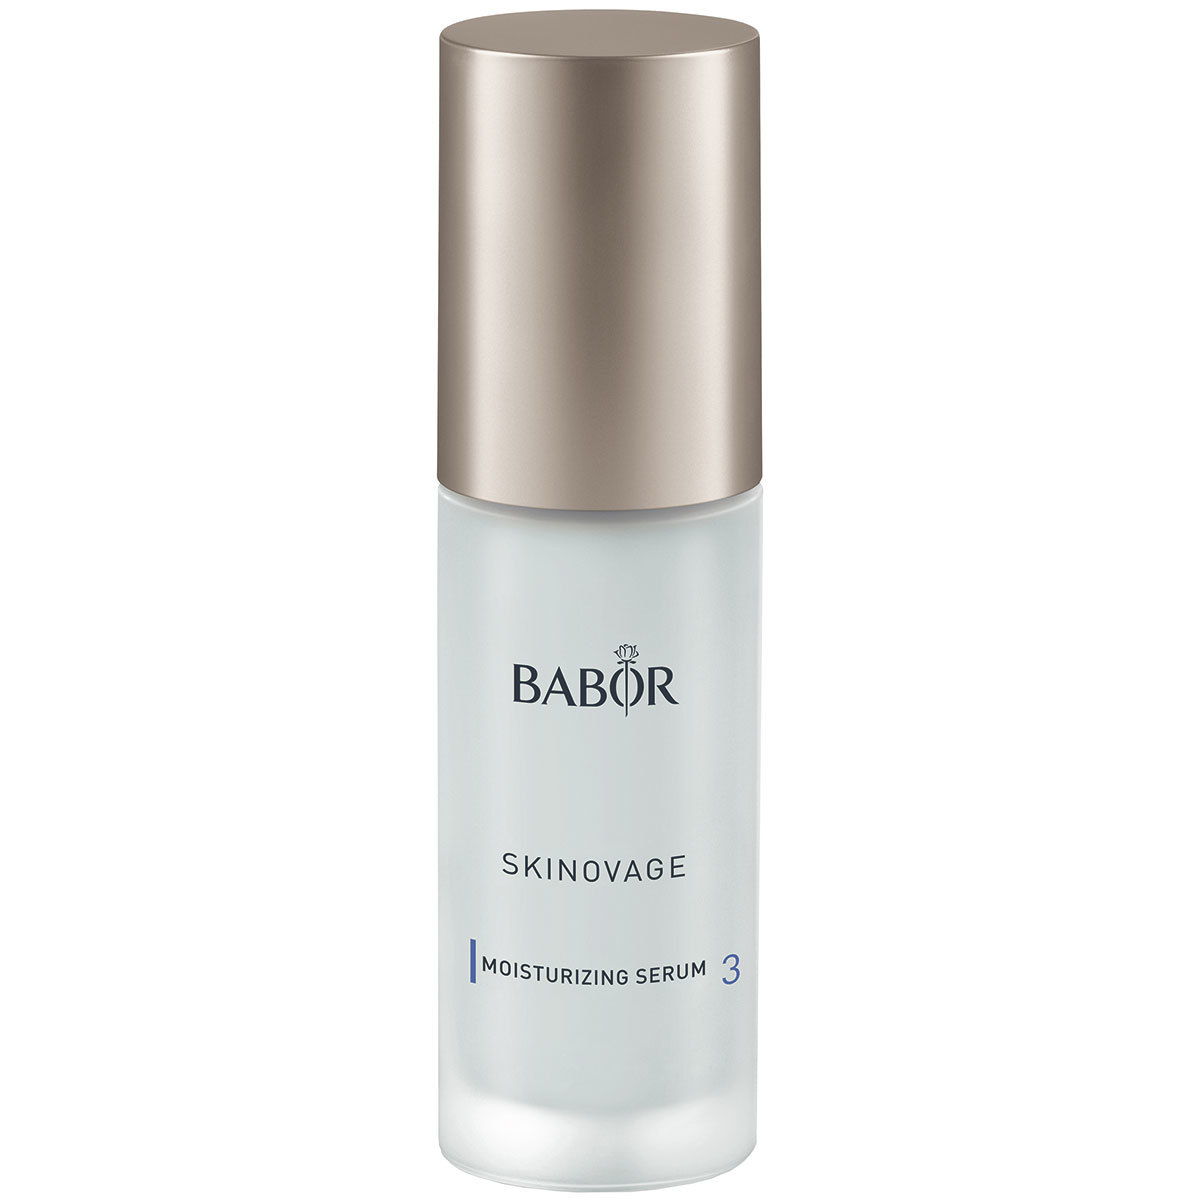 Сыворотка Babor Skinovage Moisturizing Serum 30ml